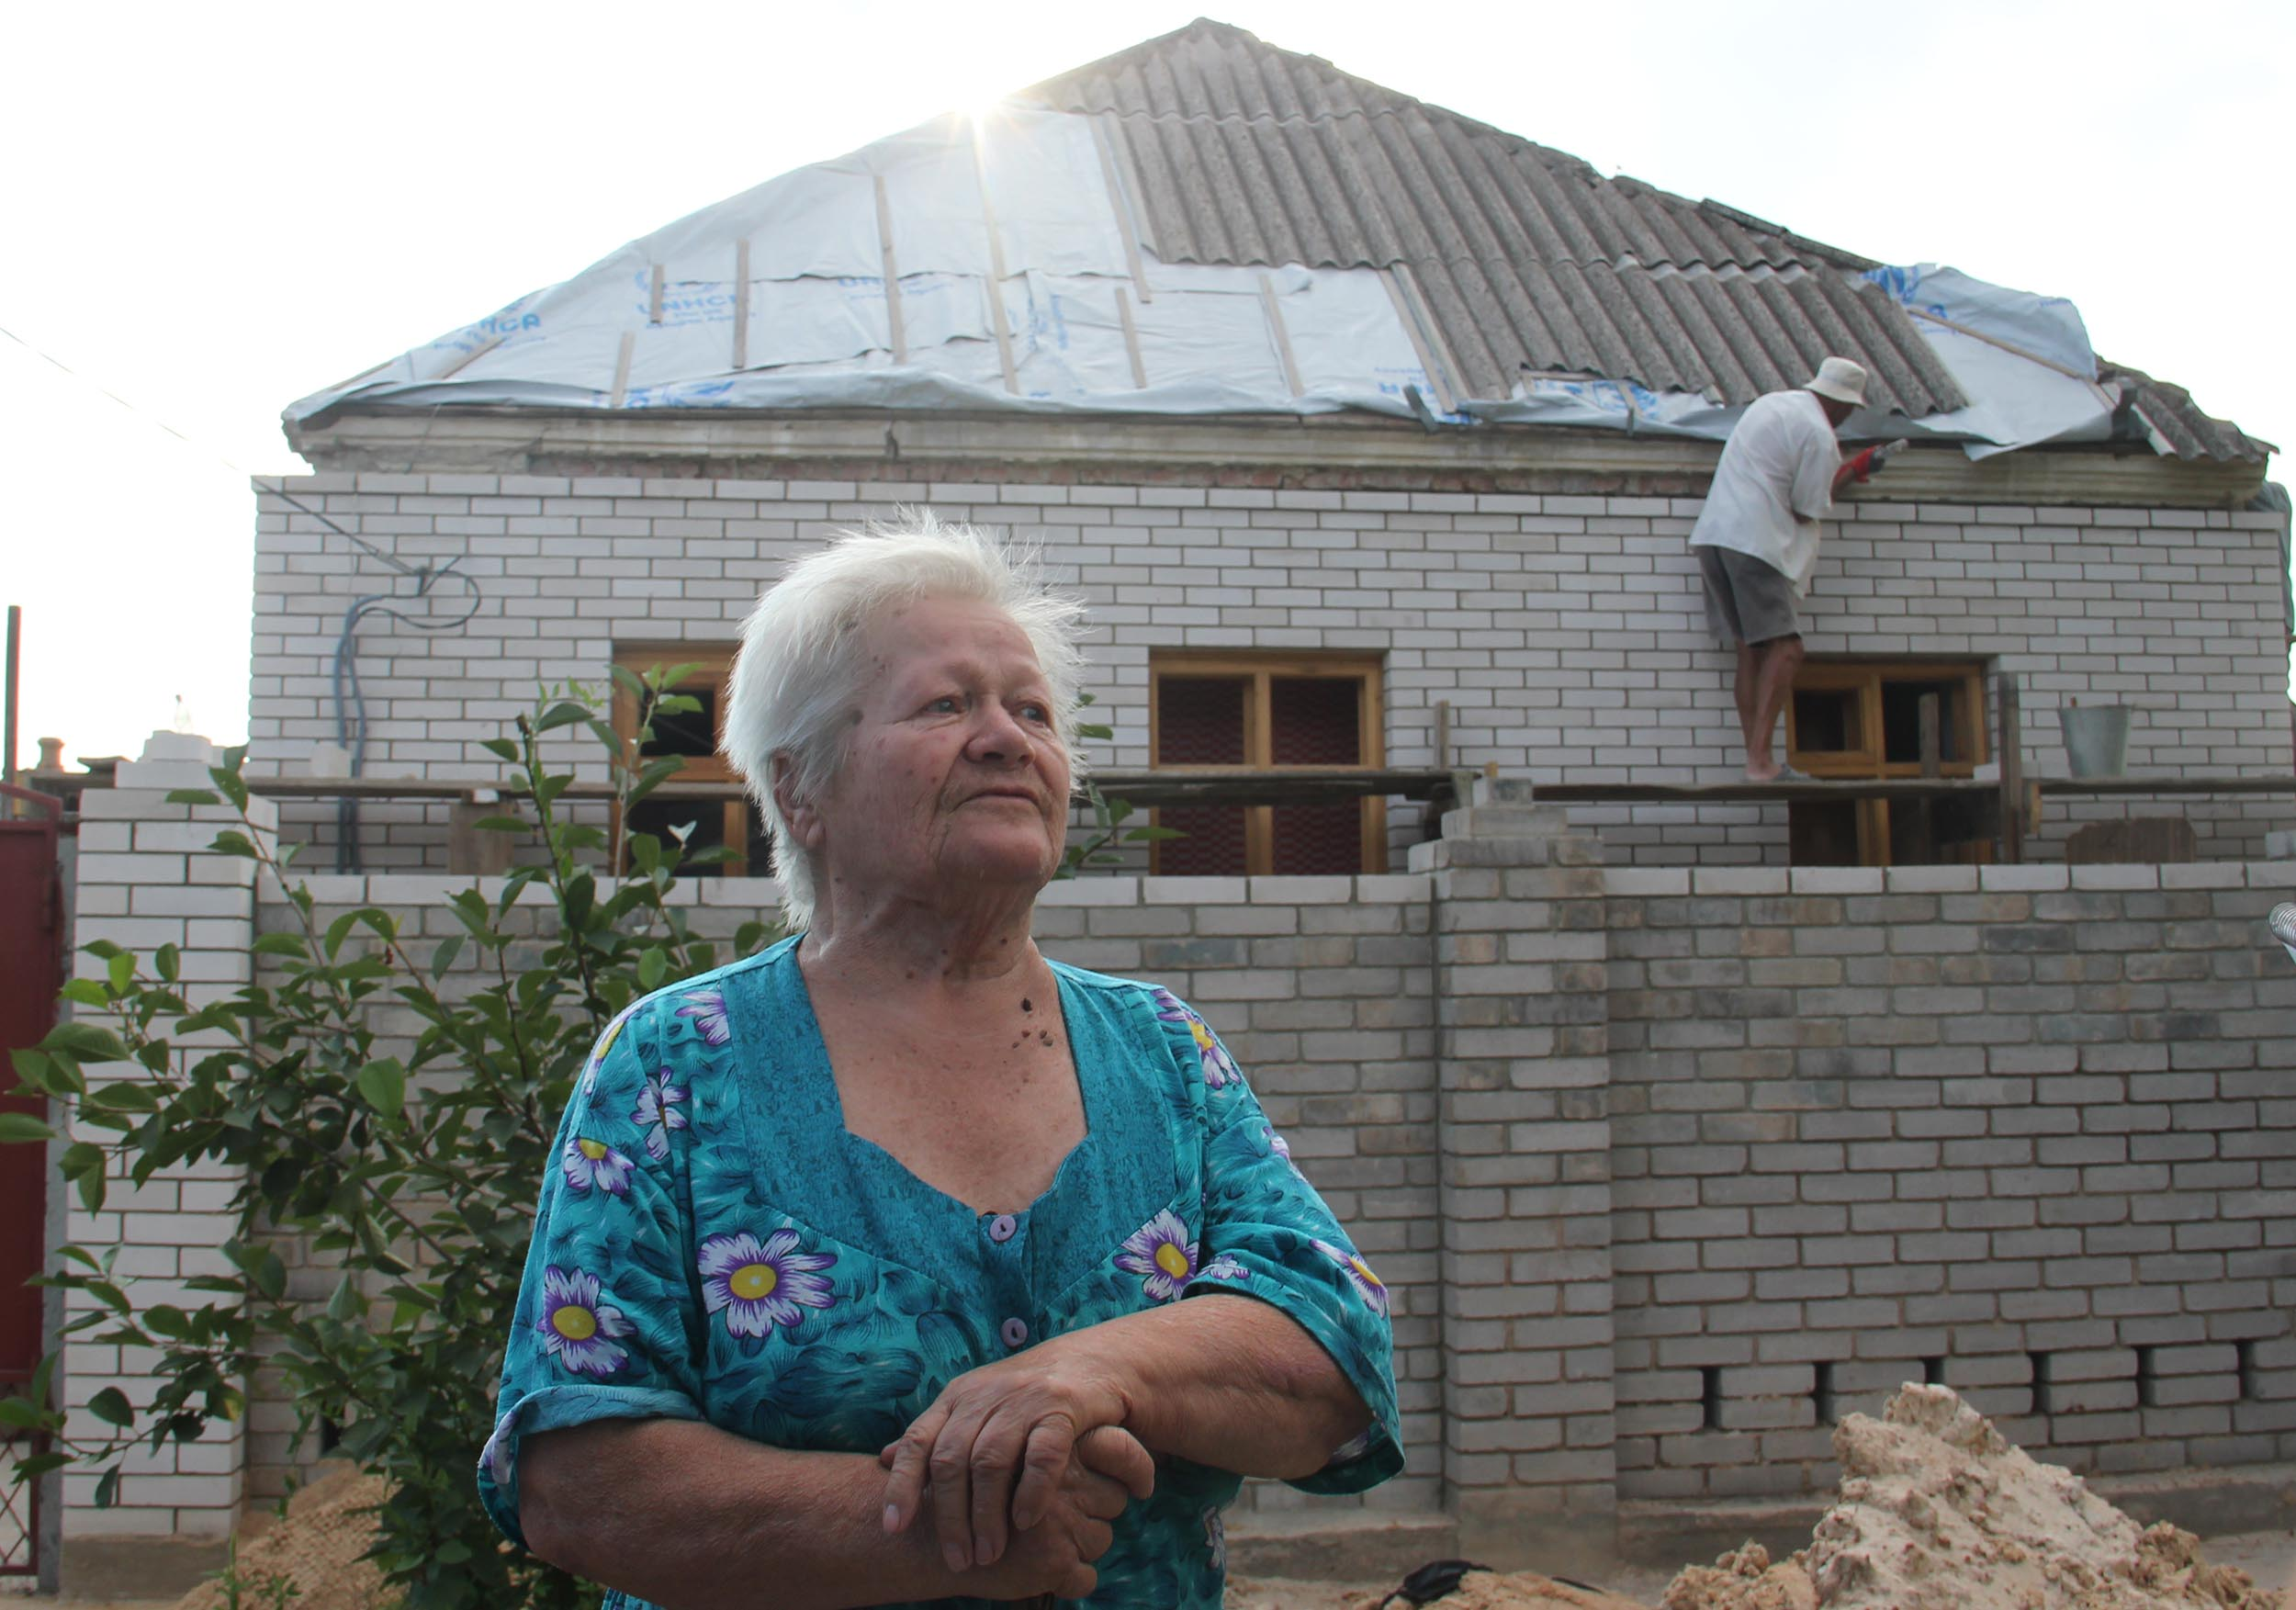 The Ukrainian government is providing compensation to rebuild homes. Here in Volnovakha, on the line of contact, displaced people are beginning to return and rebuild. Photo: UNHCR